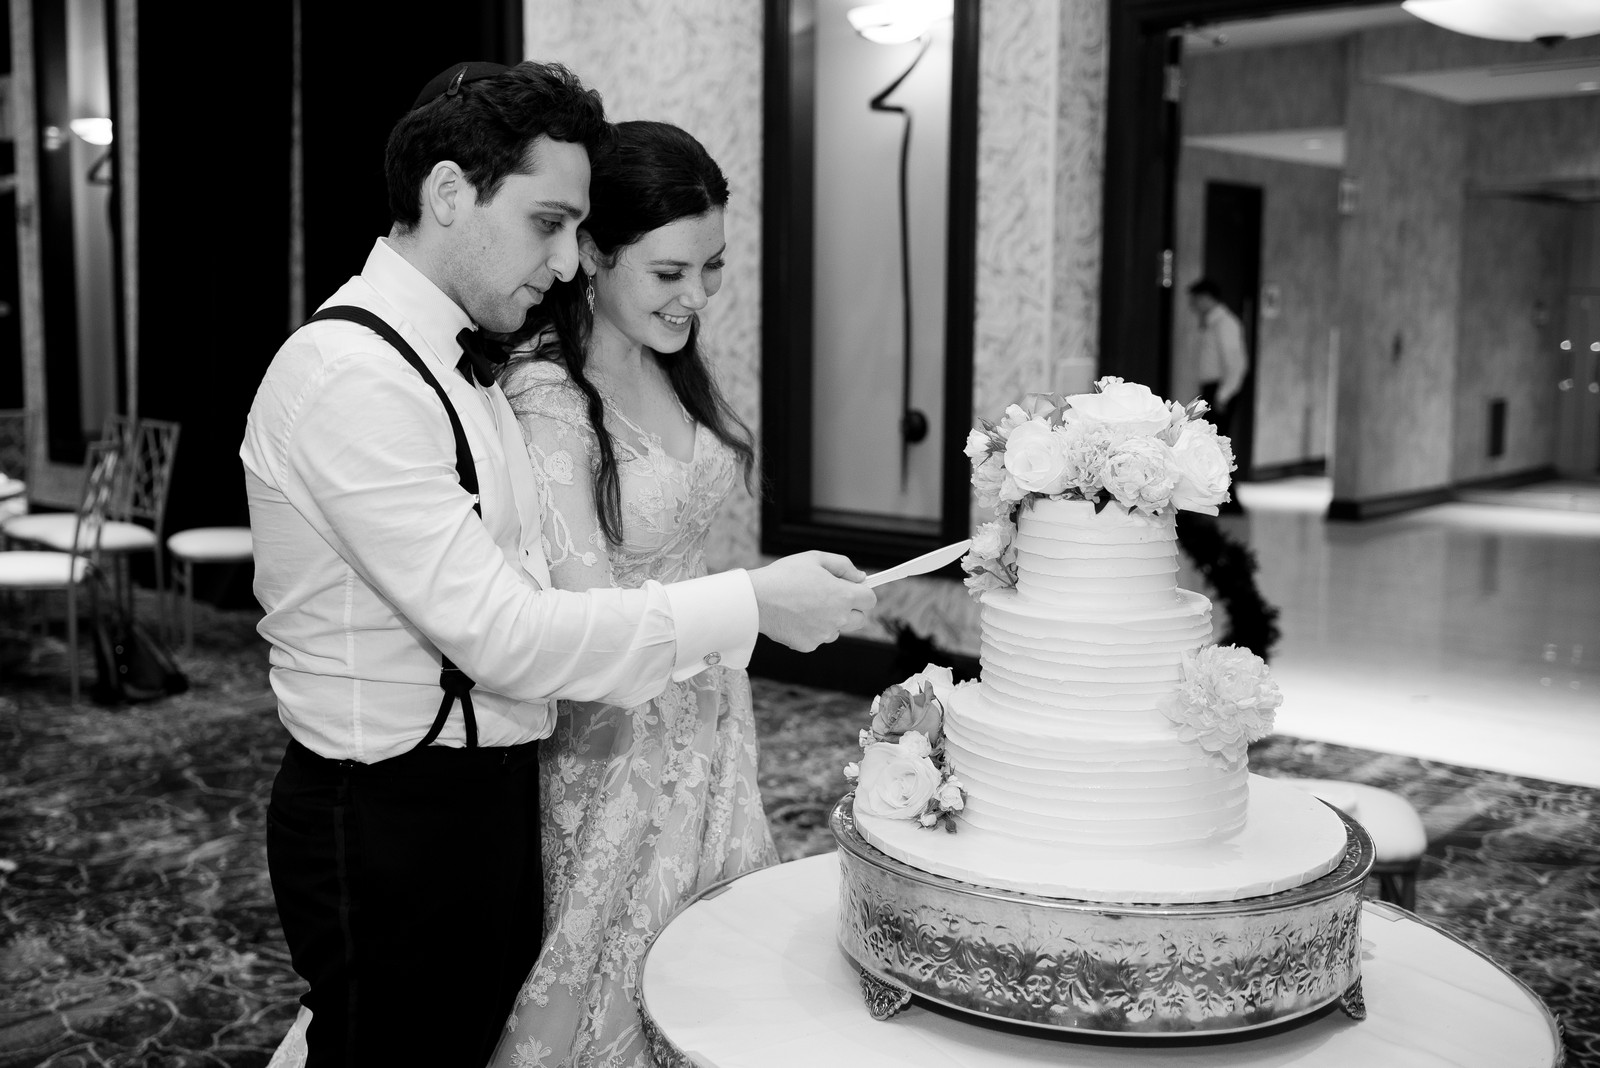 Abby and Miles' Modern Jewish Wedding at Nicotra's Ballroom, Hilton Garden Inn, Staten Island, NY, Photos by Chaim Schvarcz bride groom cake